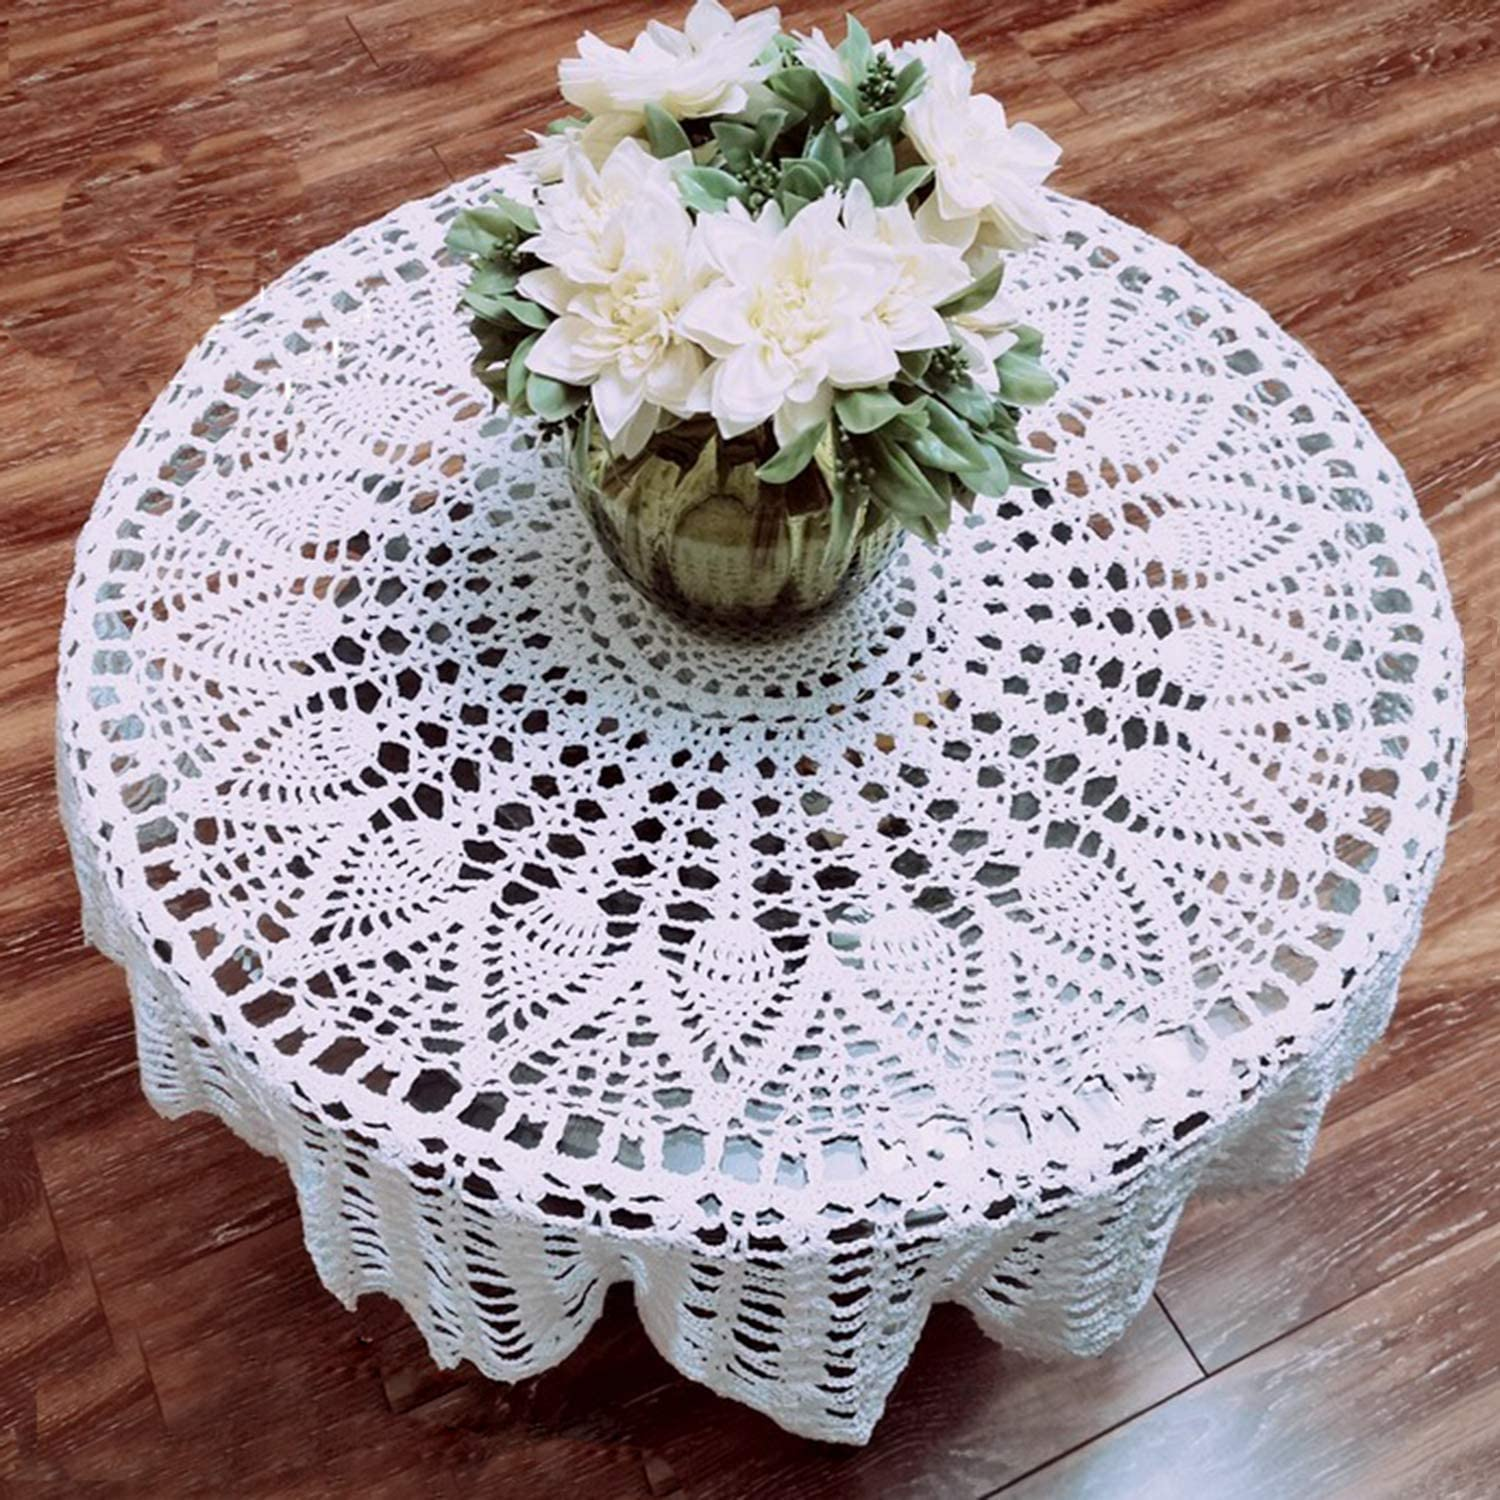 Jialisen Tablecloth White Lace Crochet Handmade Cotton Table Cloth Round 31.5 Inches Doilies for Wedding Party Dining Room Sofa Home Décor